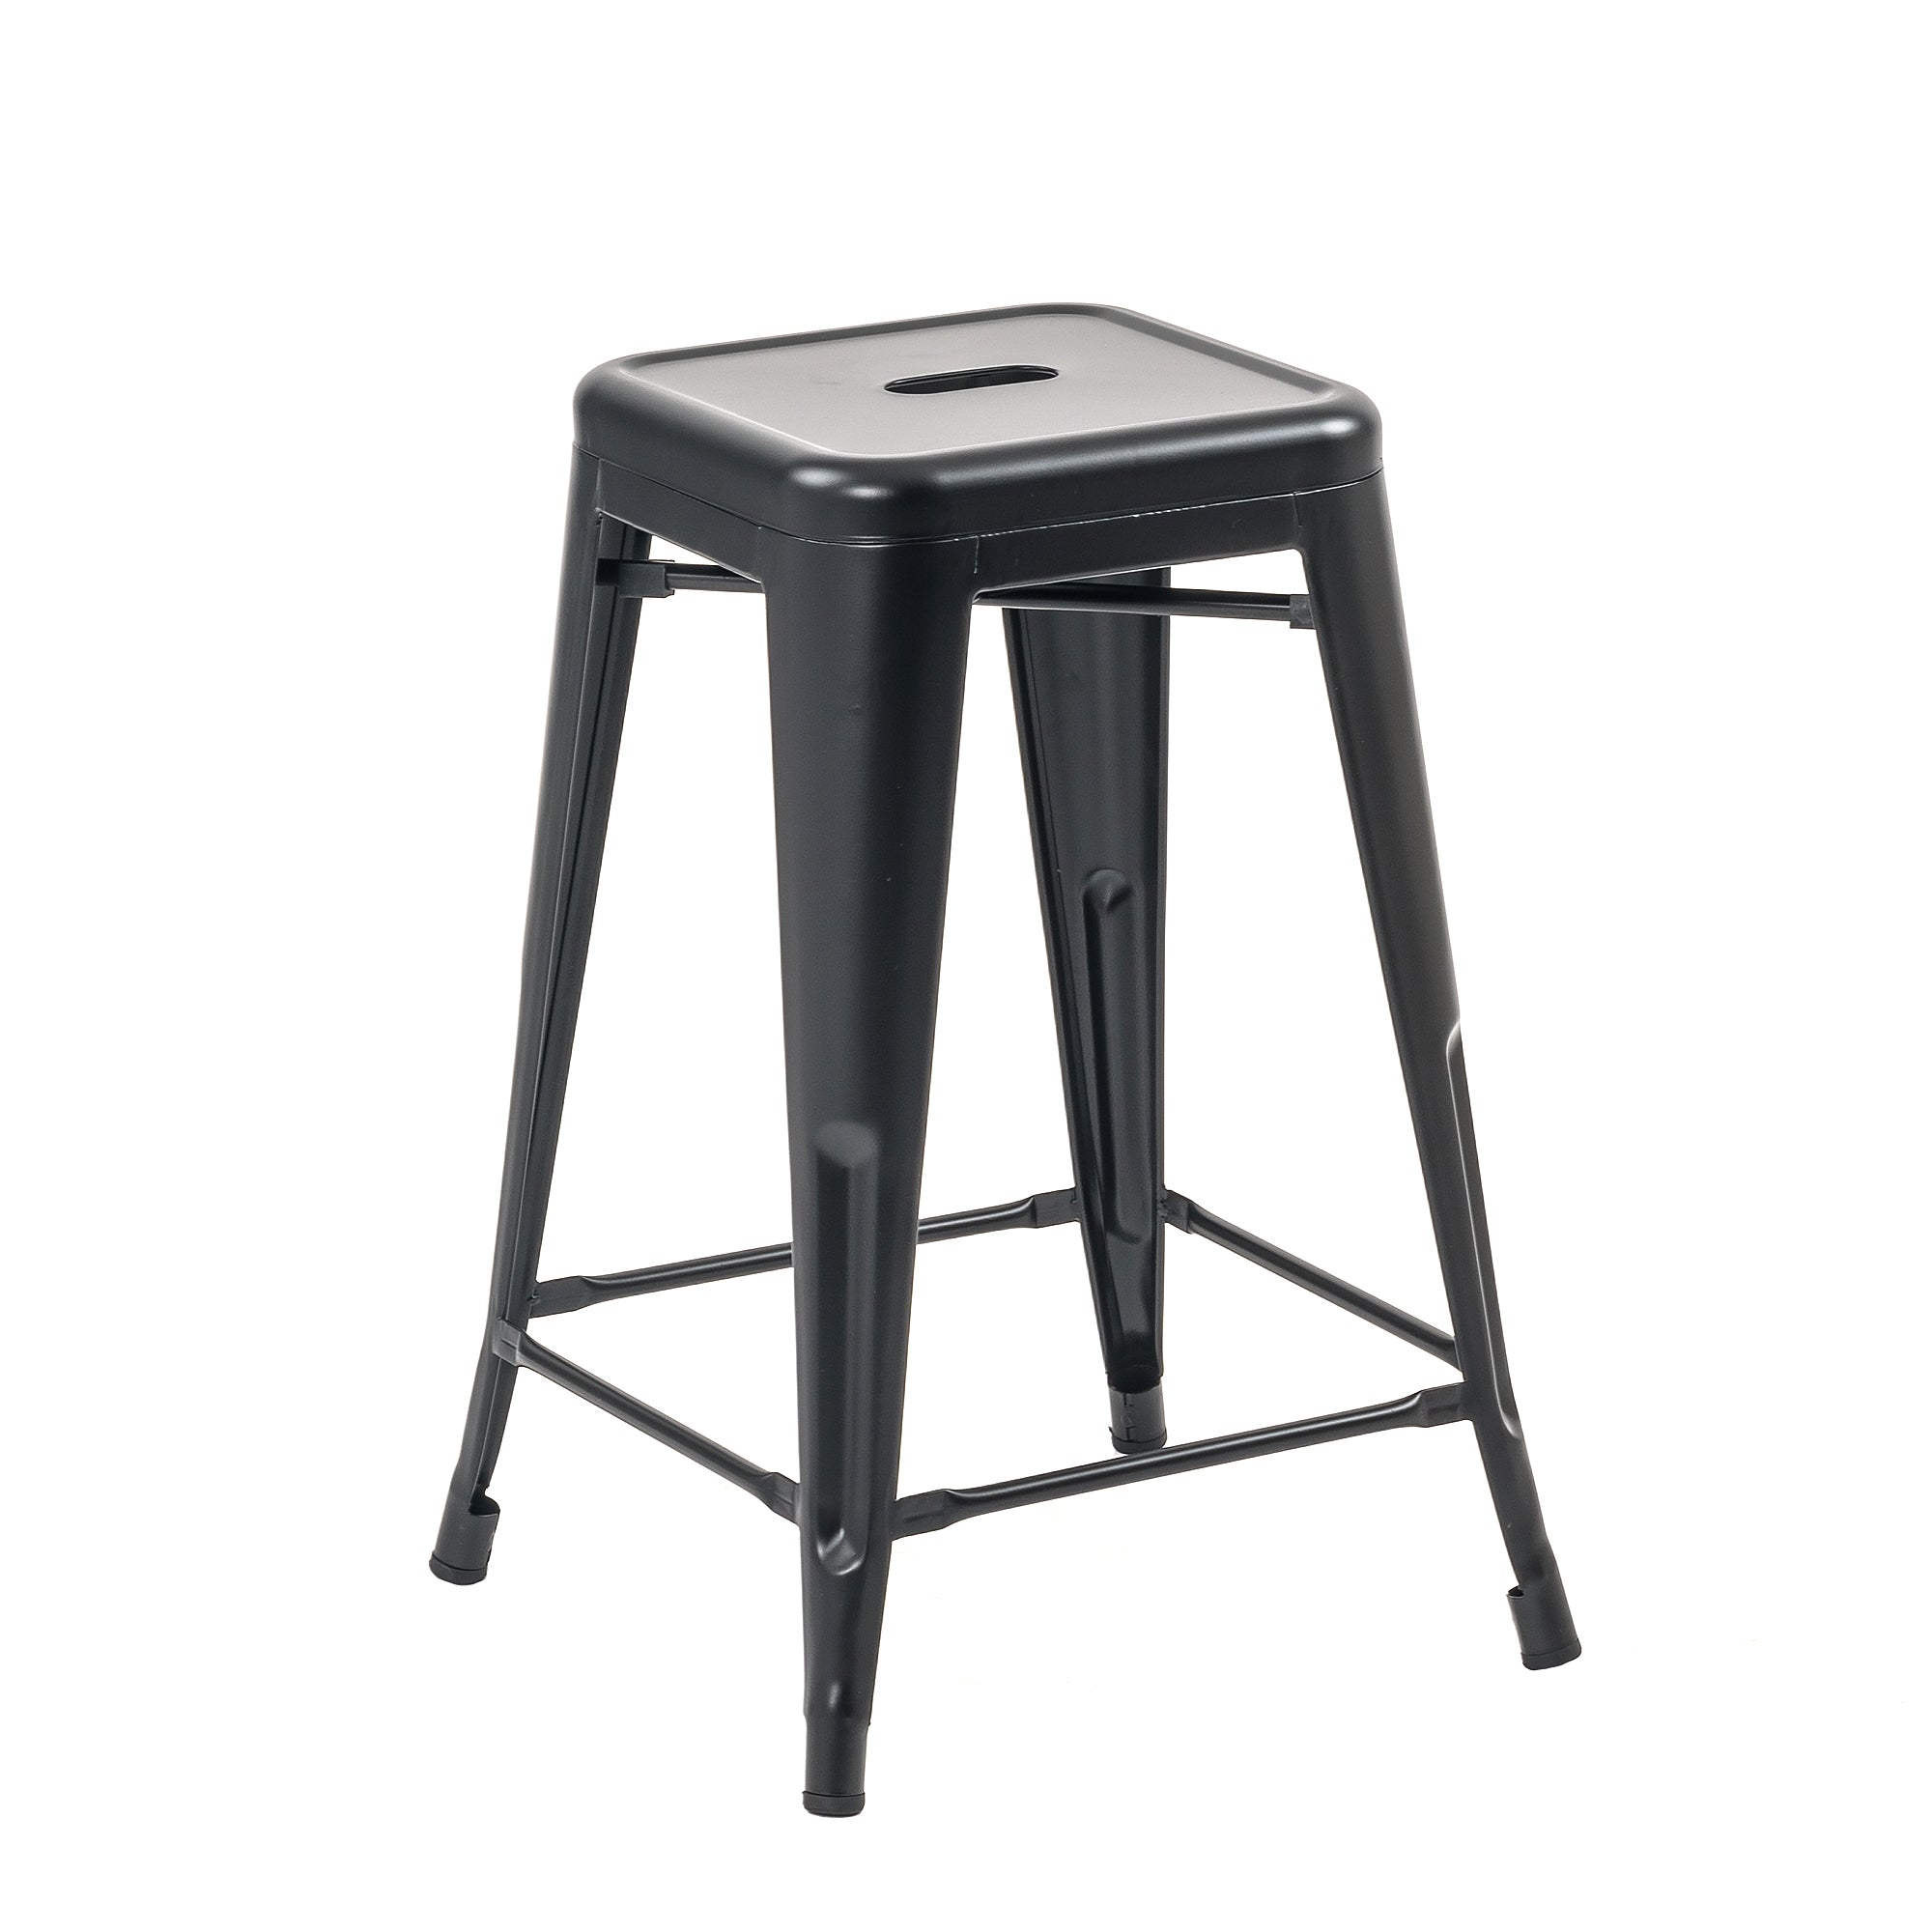 Sensational Buschman Set Of 2 Matte Black 24 Inch Counter Height Metal Bar Stools Indoor Outdoor Stackable Ibusinesslaw Wood Chair Design Ideas Ibusinesslaworg